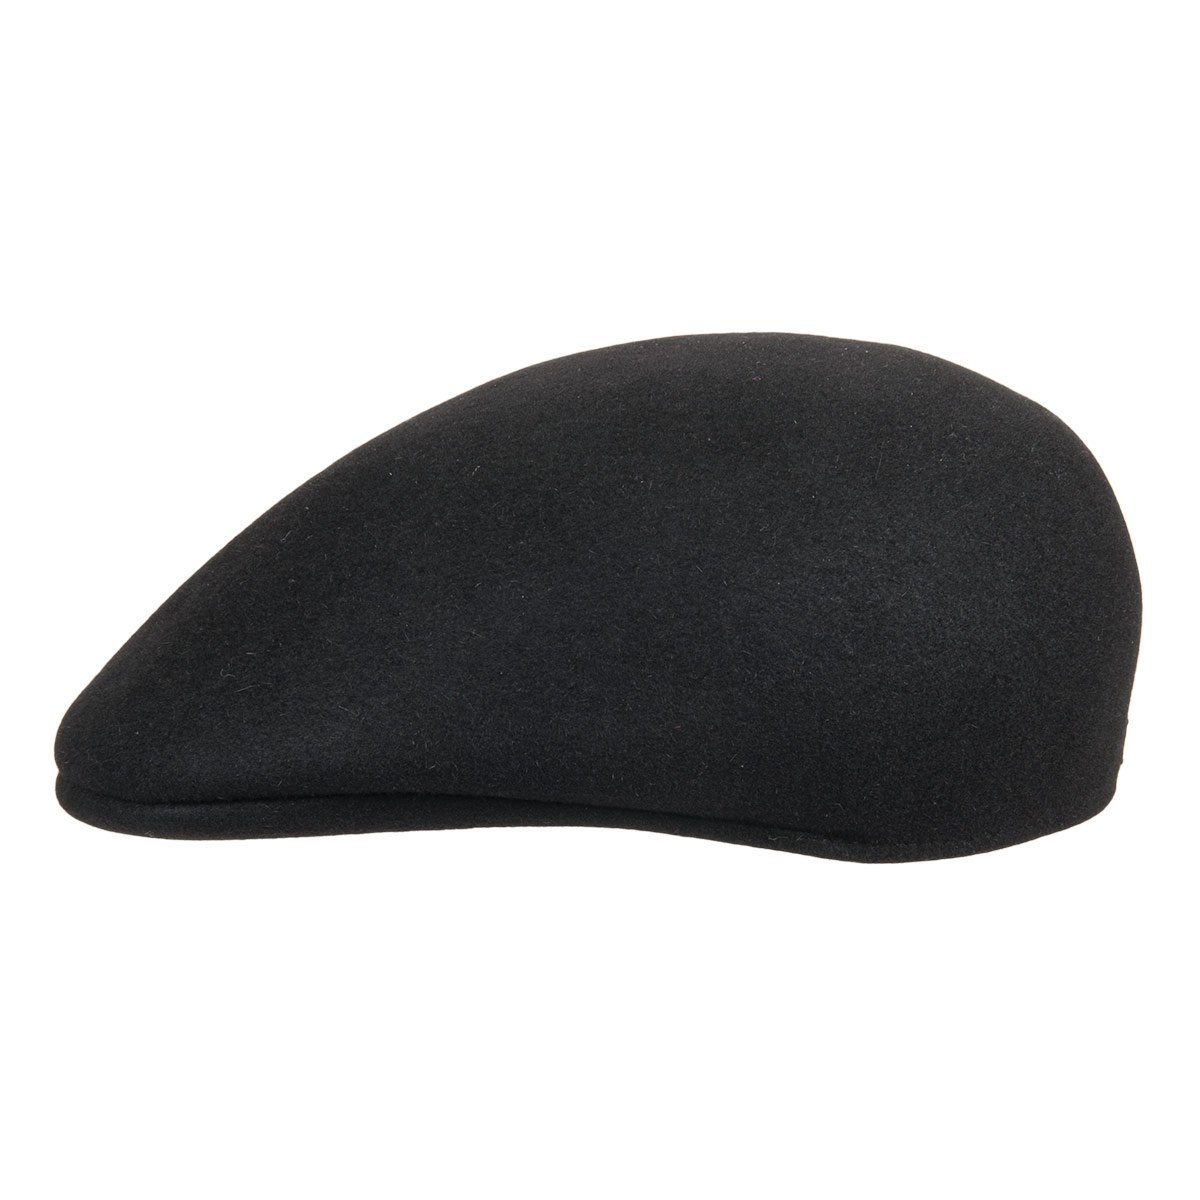 673d4567955 The sporty fur felt cap made in Italy by Borsalino